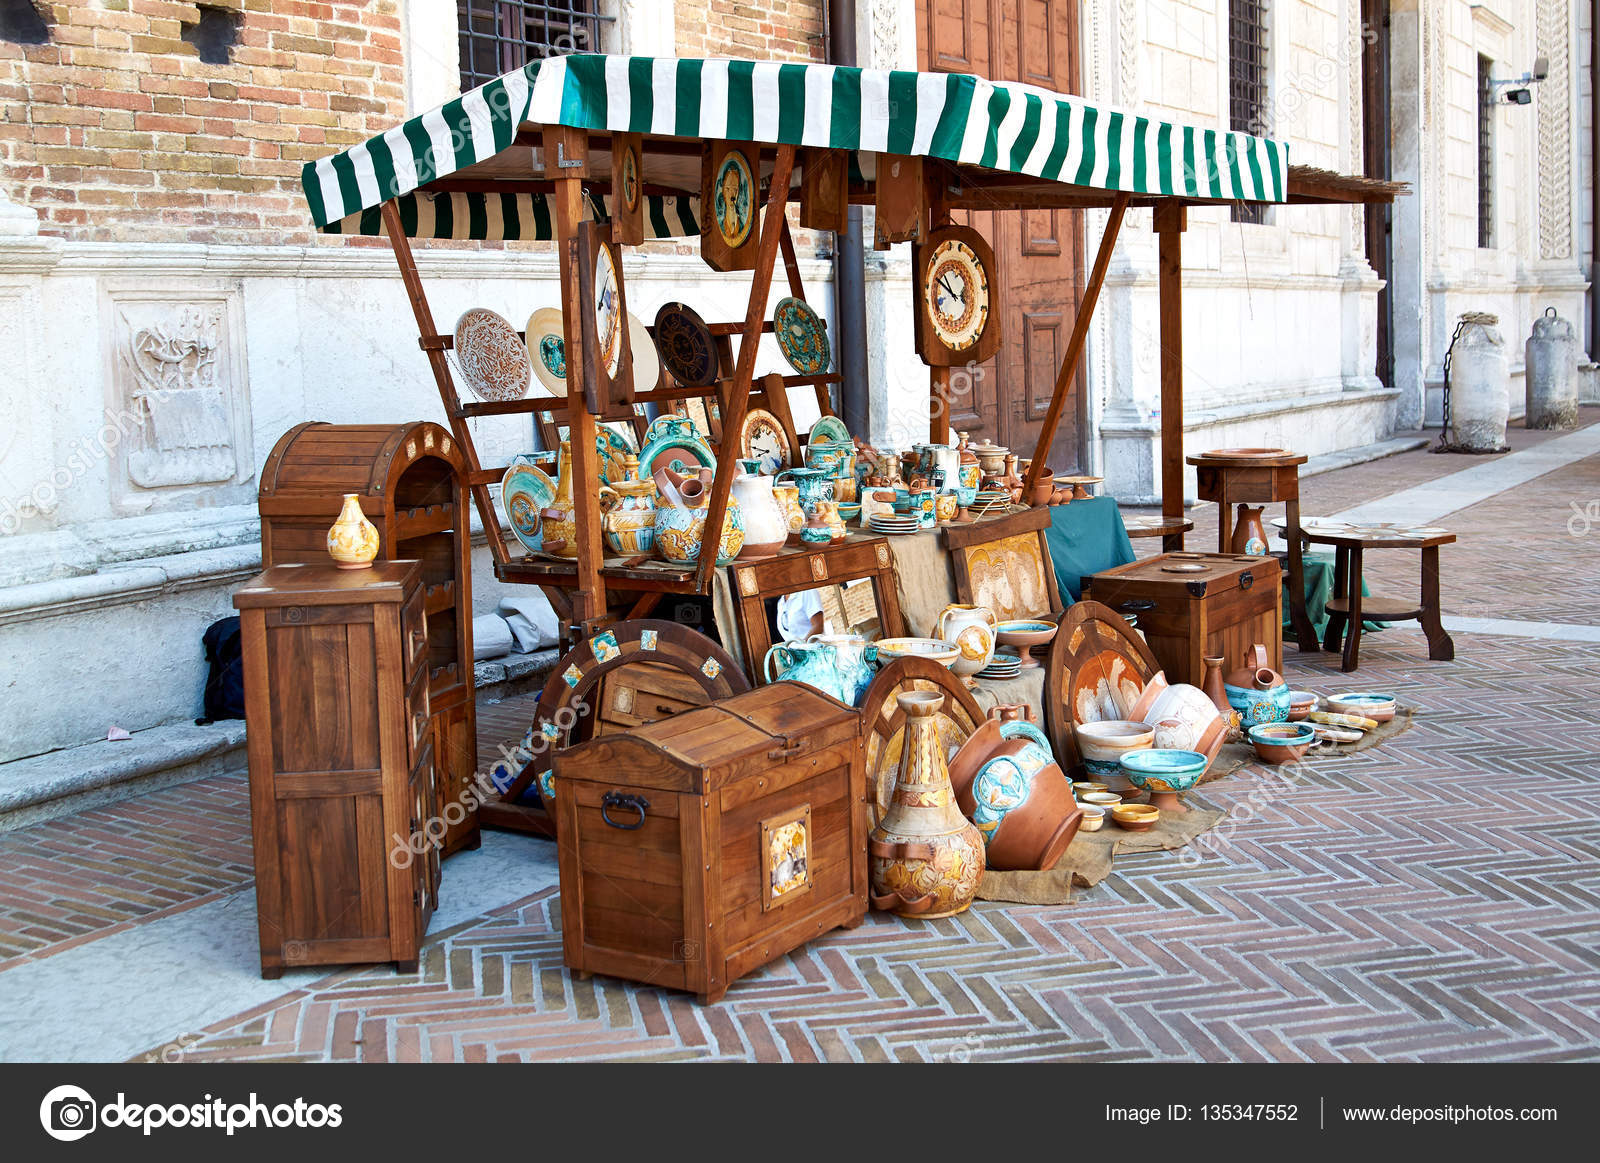 Village Fair Vintage Handicrafts Pottery Leather And Wooden